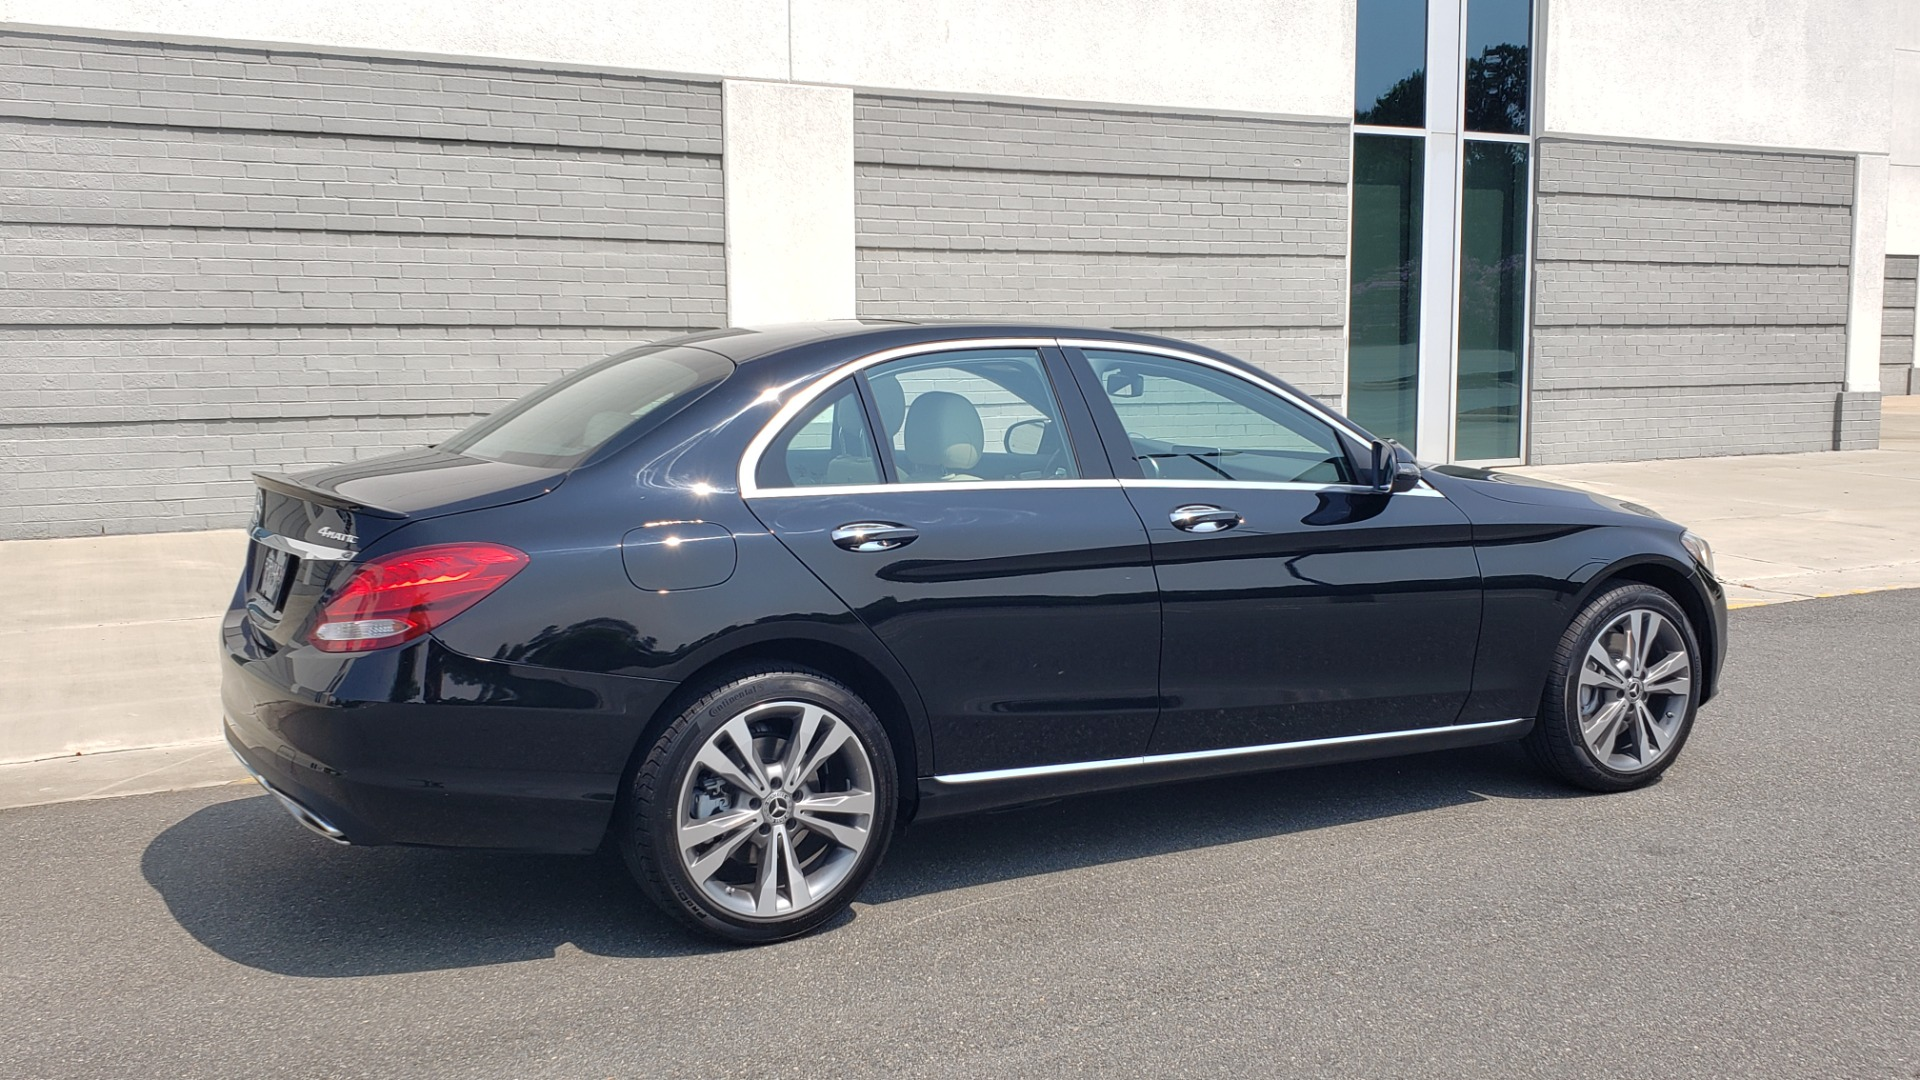 Used 2018 Mercedes-Benz C-CLASS C 300 4MATIC / PREMIUM / MULTIMEDIA / NAV / PANO-ROOF / BURMESTER for sale $30,495 at Formula Imports in Charlotte NC 28227 2